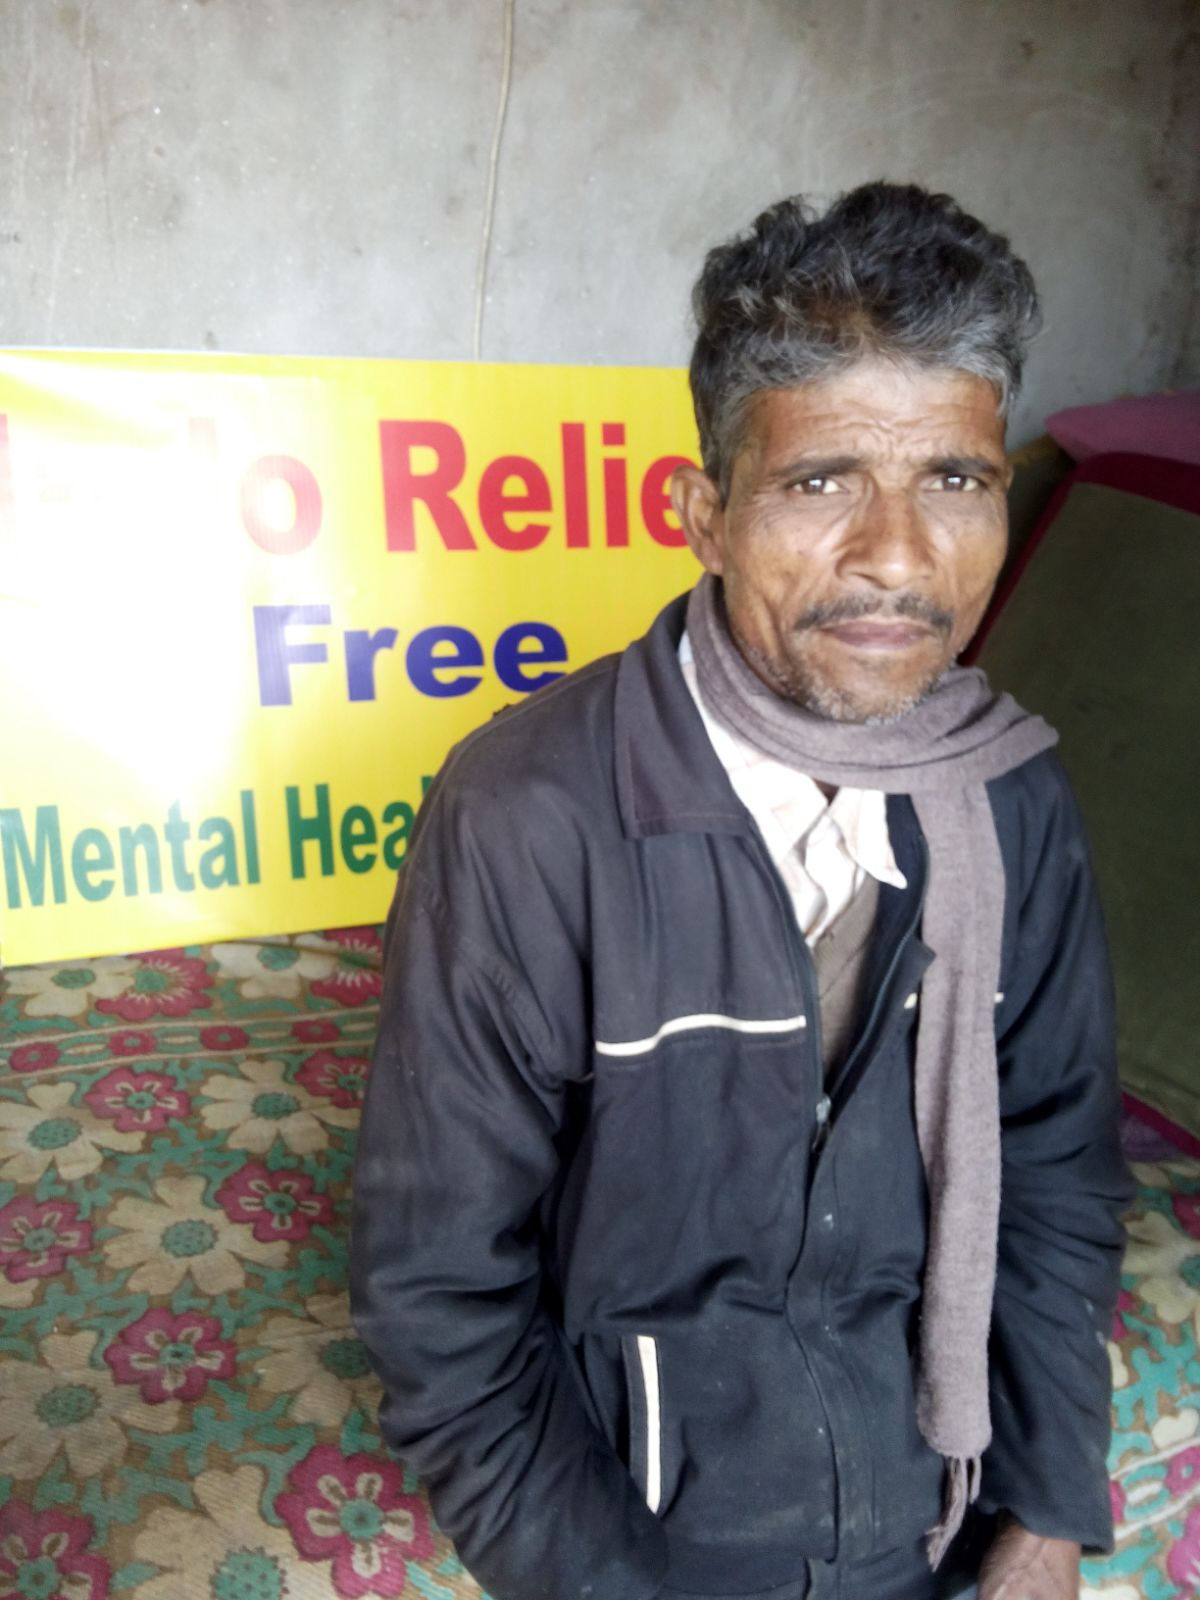 Meet Dayakar. His brother died a few months ago from a traffic accident. He tells us that he cannot sleep. He says that he cannot focus on work. He wants to learn more about grief counseling.